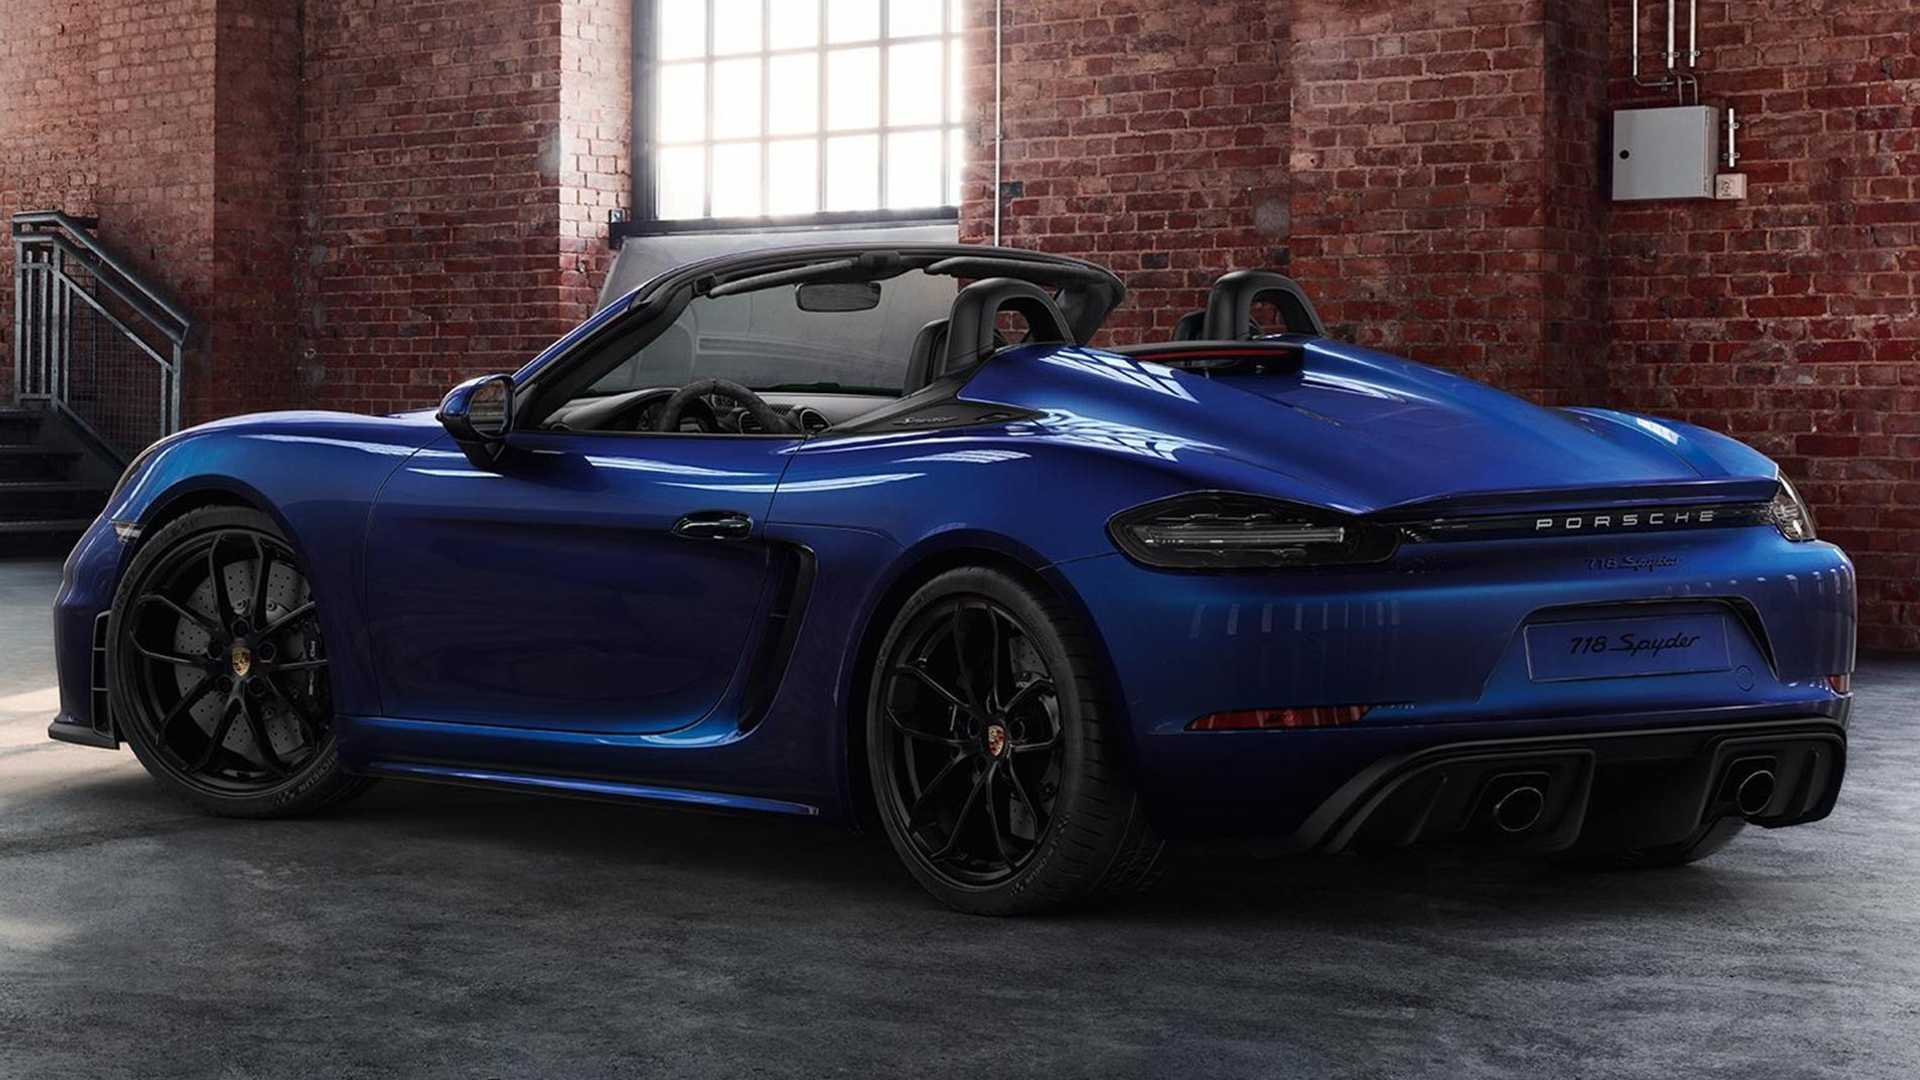 Porsche Exclusive Manufaktur Adds A Few Special Touches To